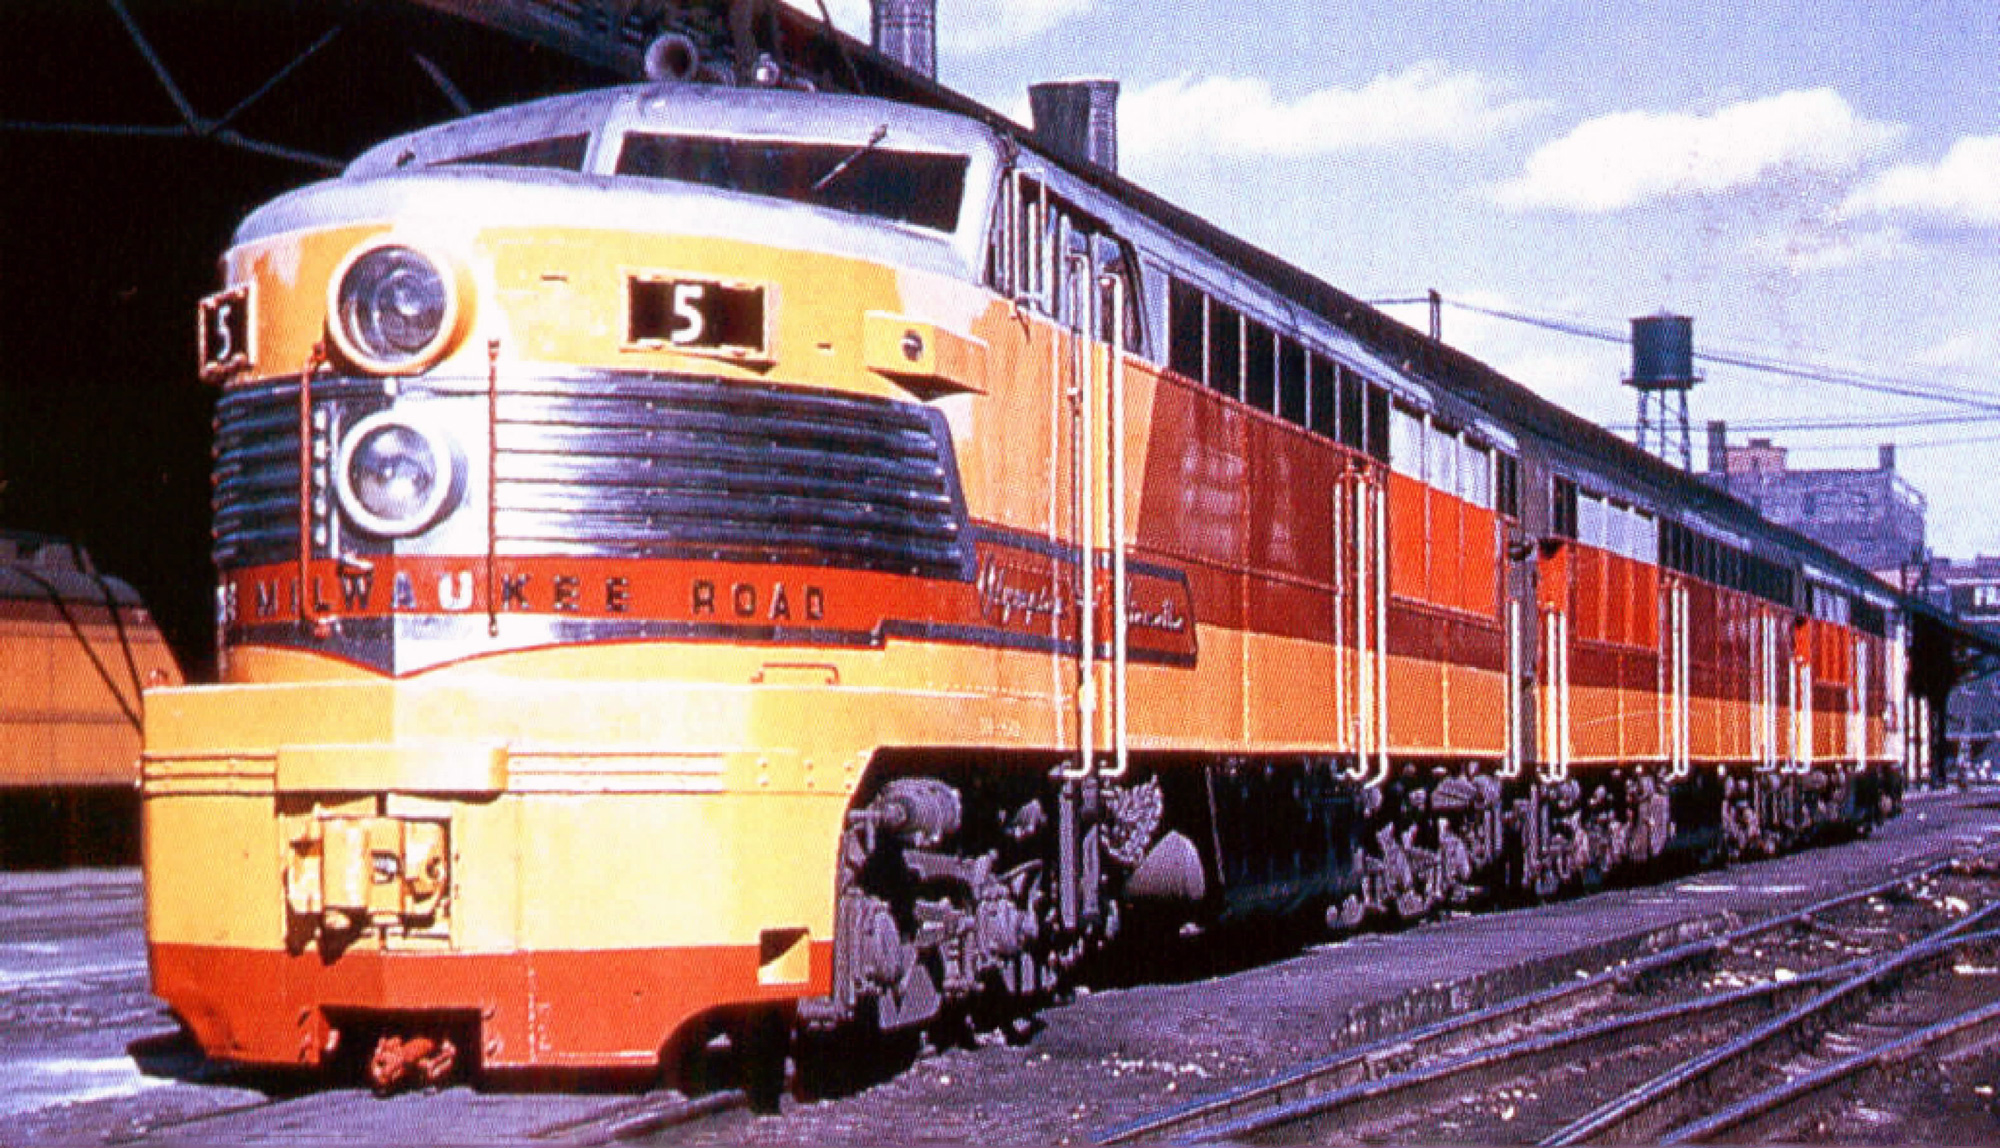 Fairbanks Morse Locomotives